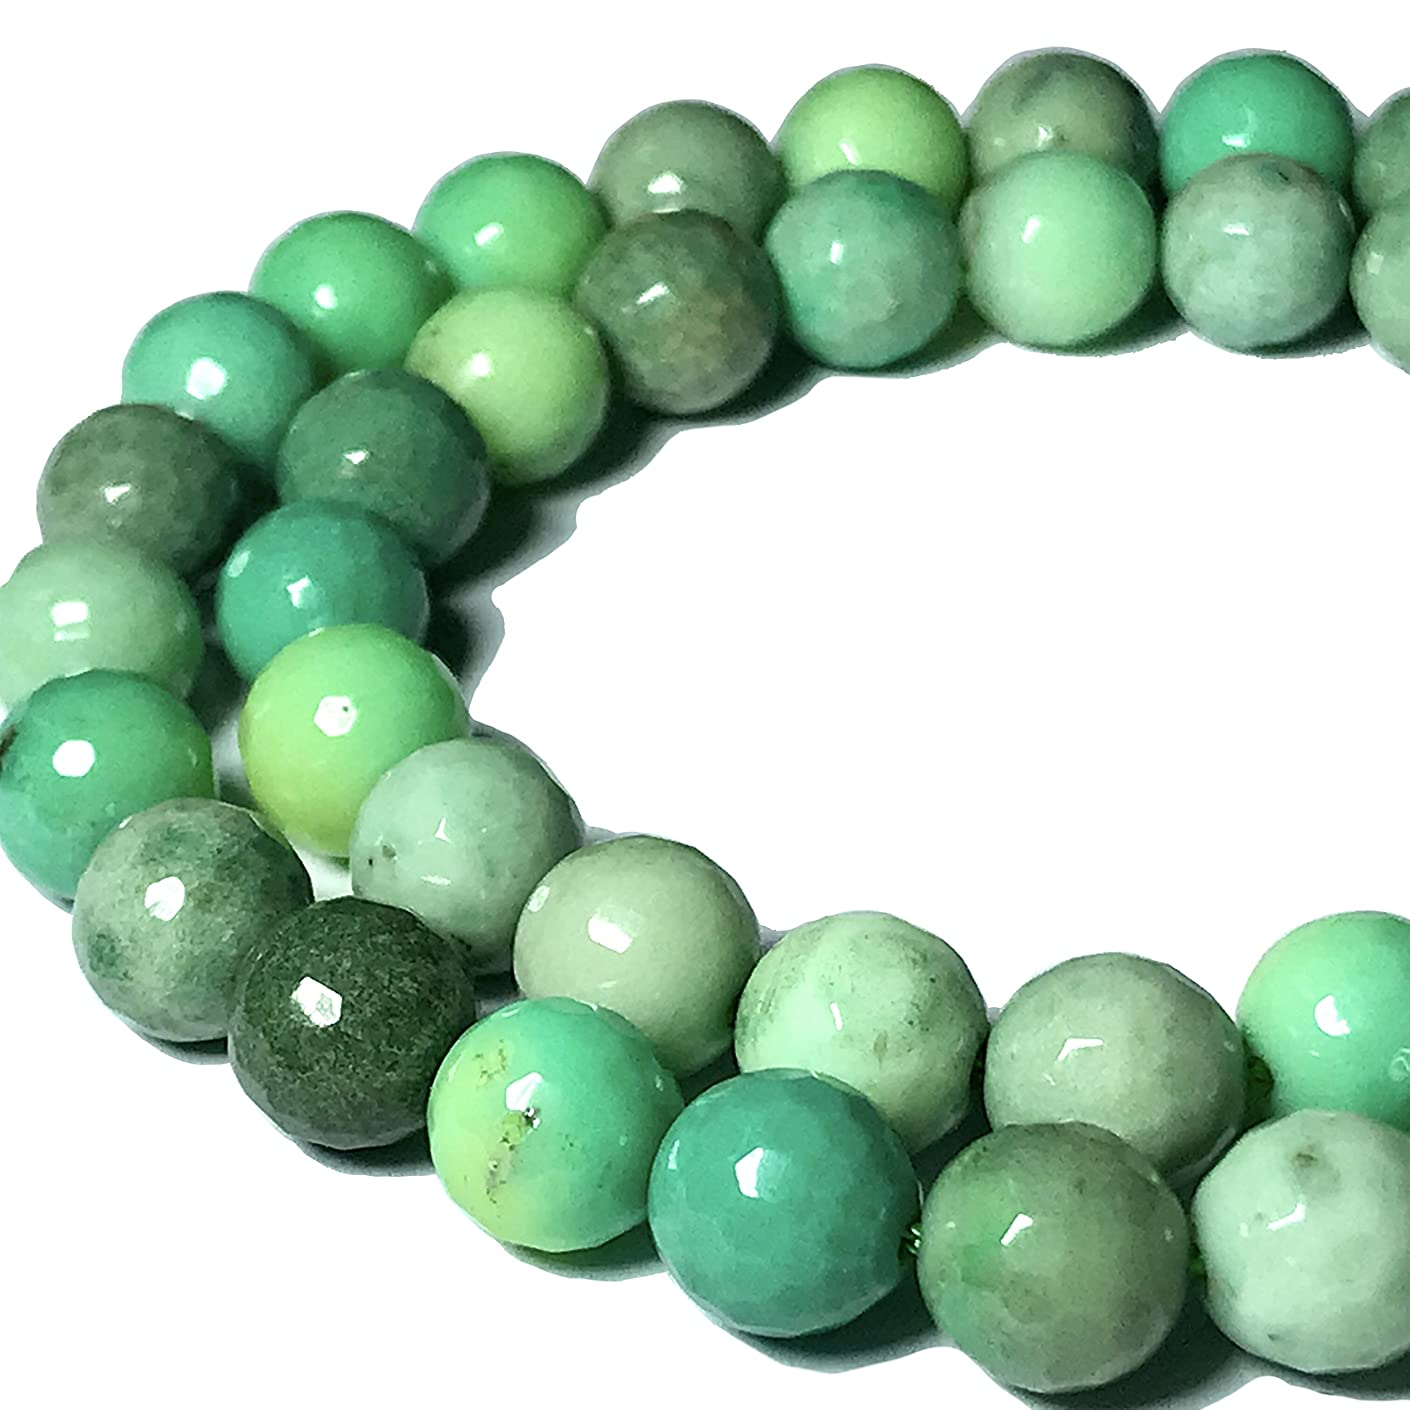 [ABCgems] Rare Australian Chrysoprase 12mm Faceted Round Beads for Beading & Jewelry Making